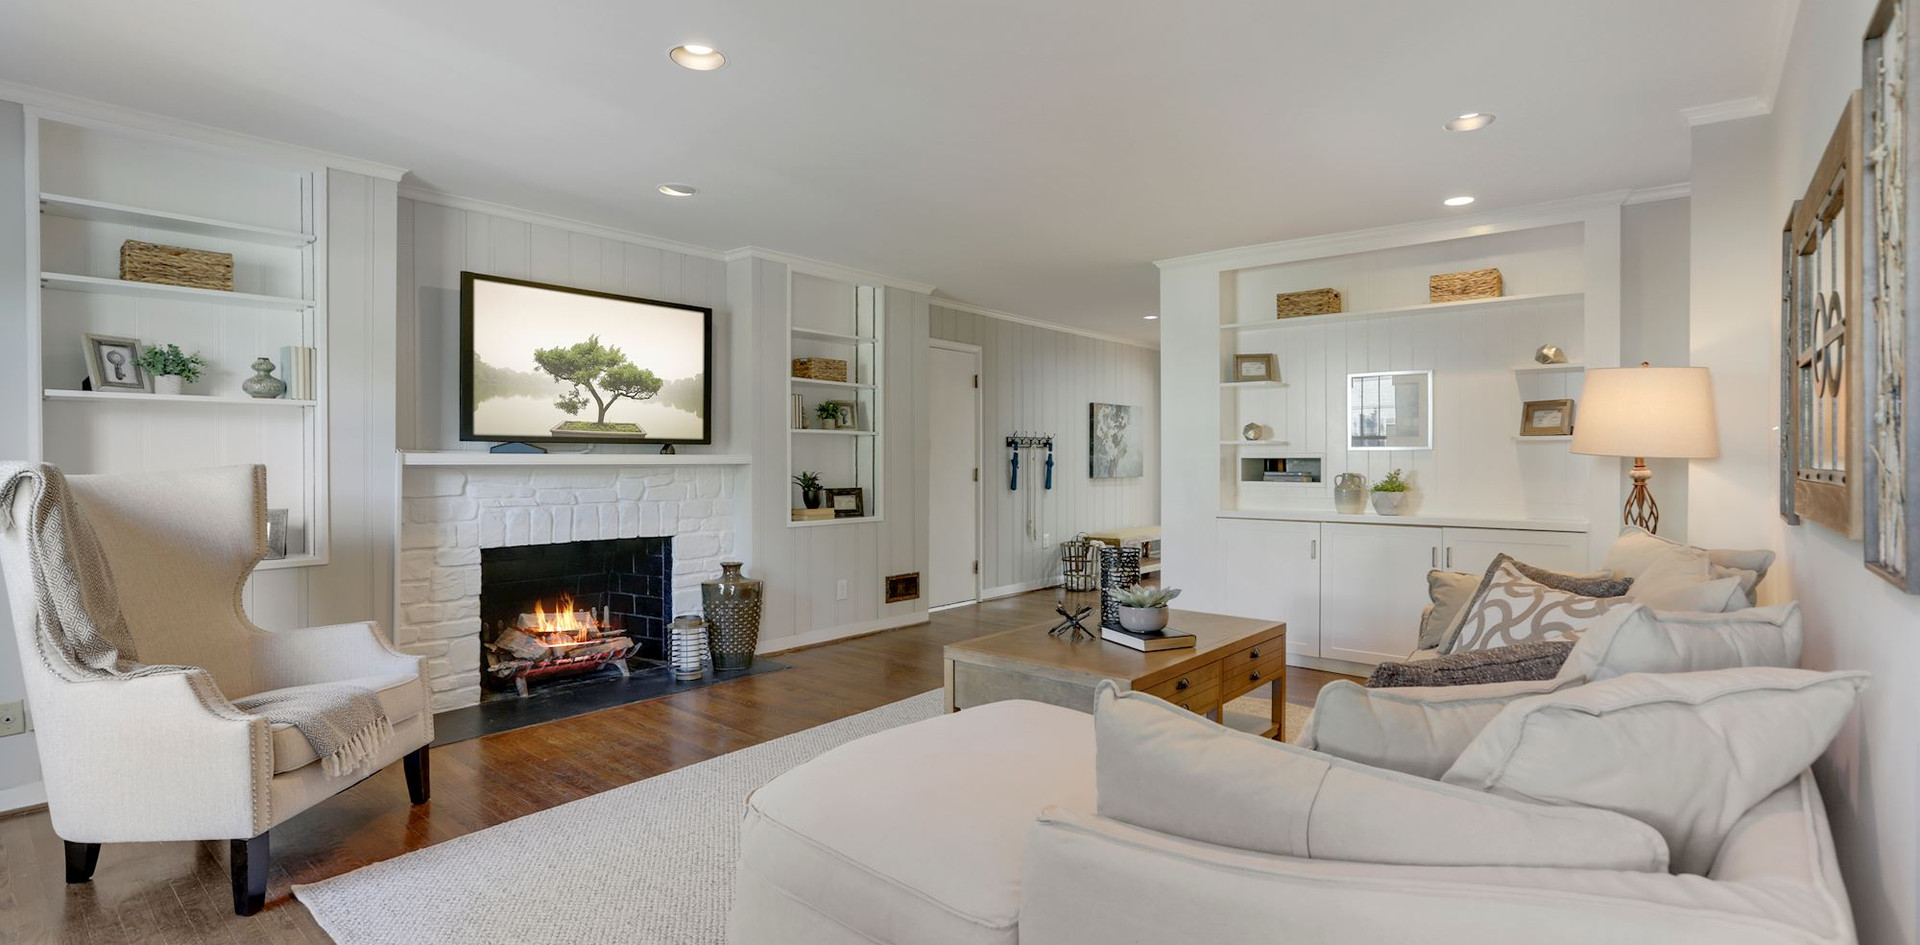 Cozy Family Room with Built-ins